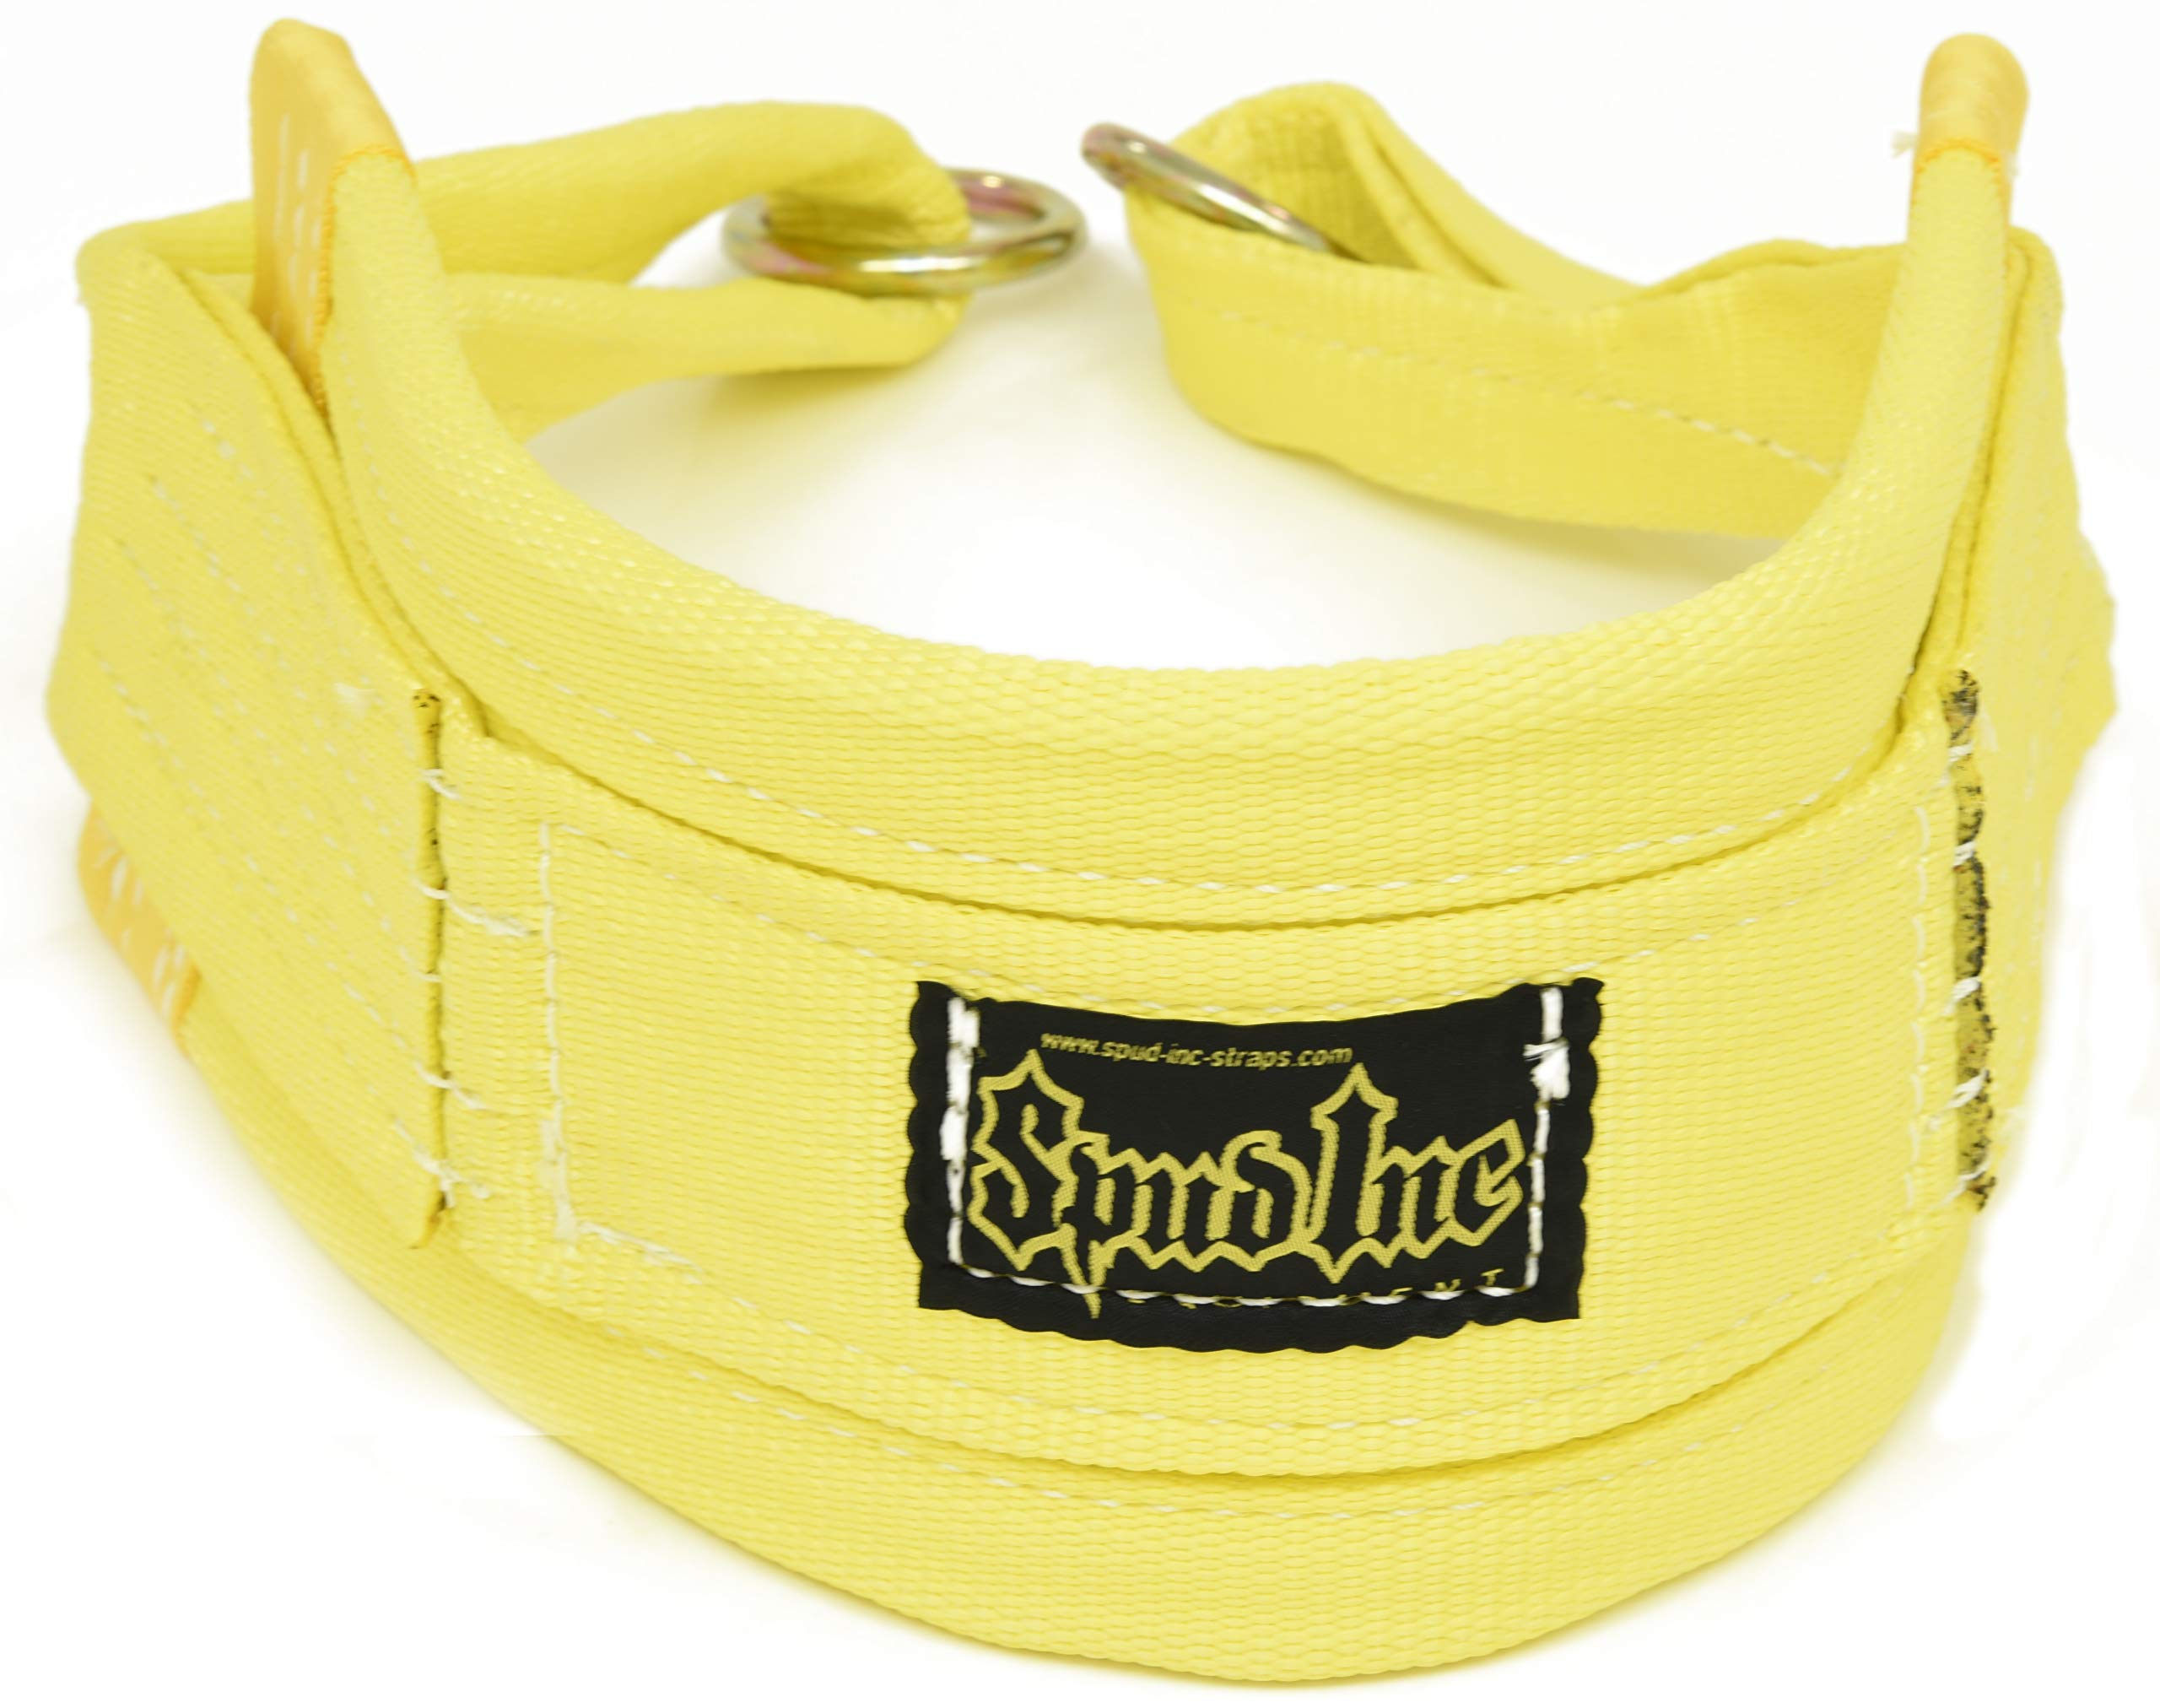 Spud Belt Squat Medium Belt for Weight Lifting Strength Training and Power Lifting (Yellow)